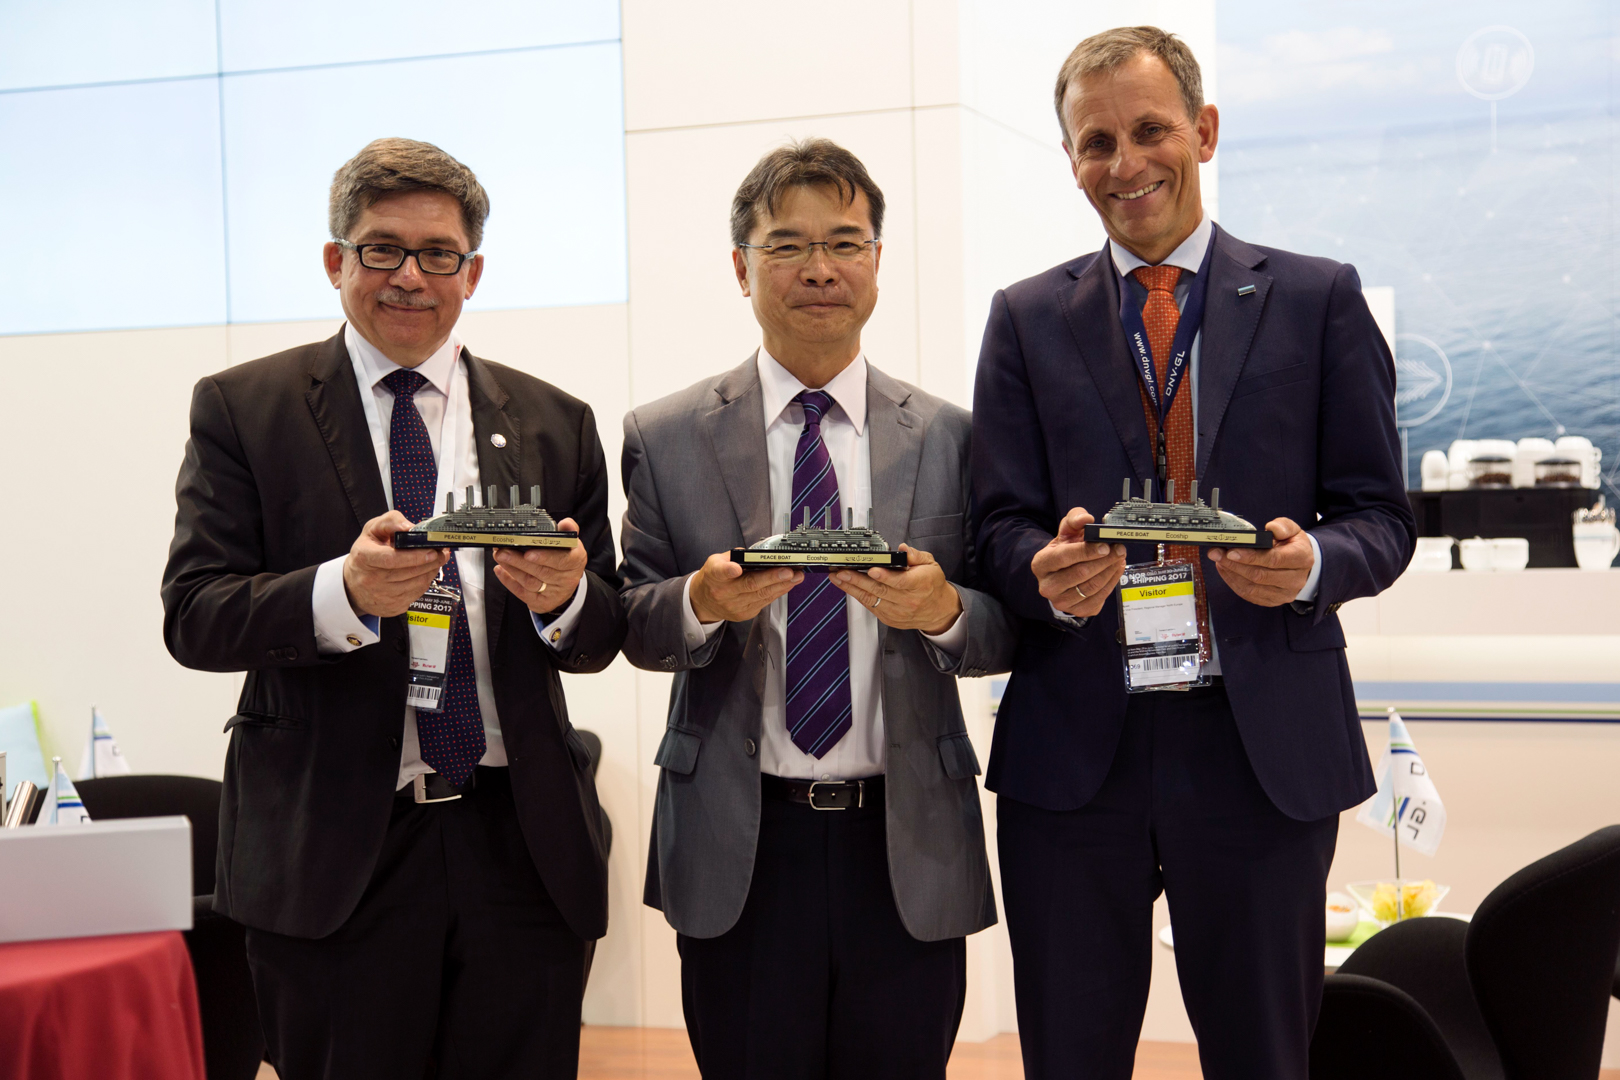 Arctech CEO Esko Mustamäki, Peace Boat director and founder Yoshioka Tatsuya and SVP, regional manager North Europe from Classification Society DNV GL, Jon Rysst.